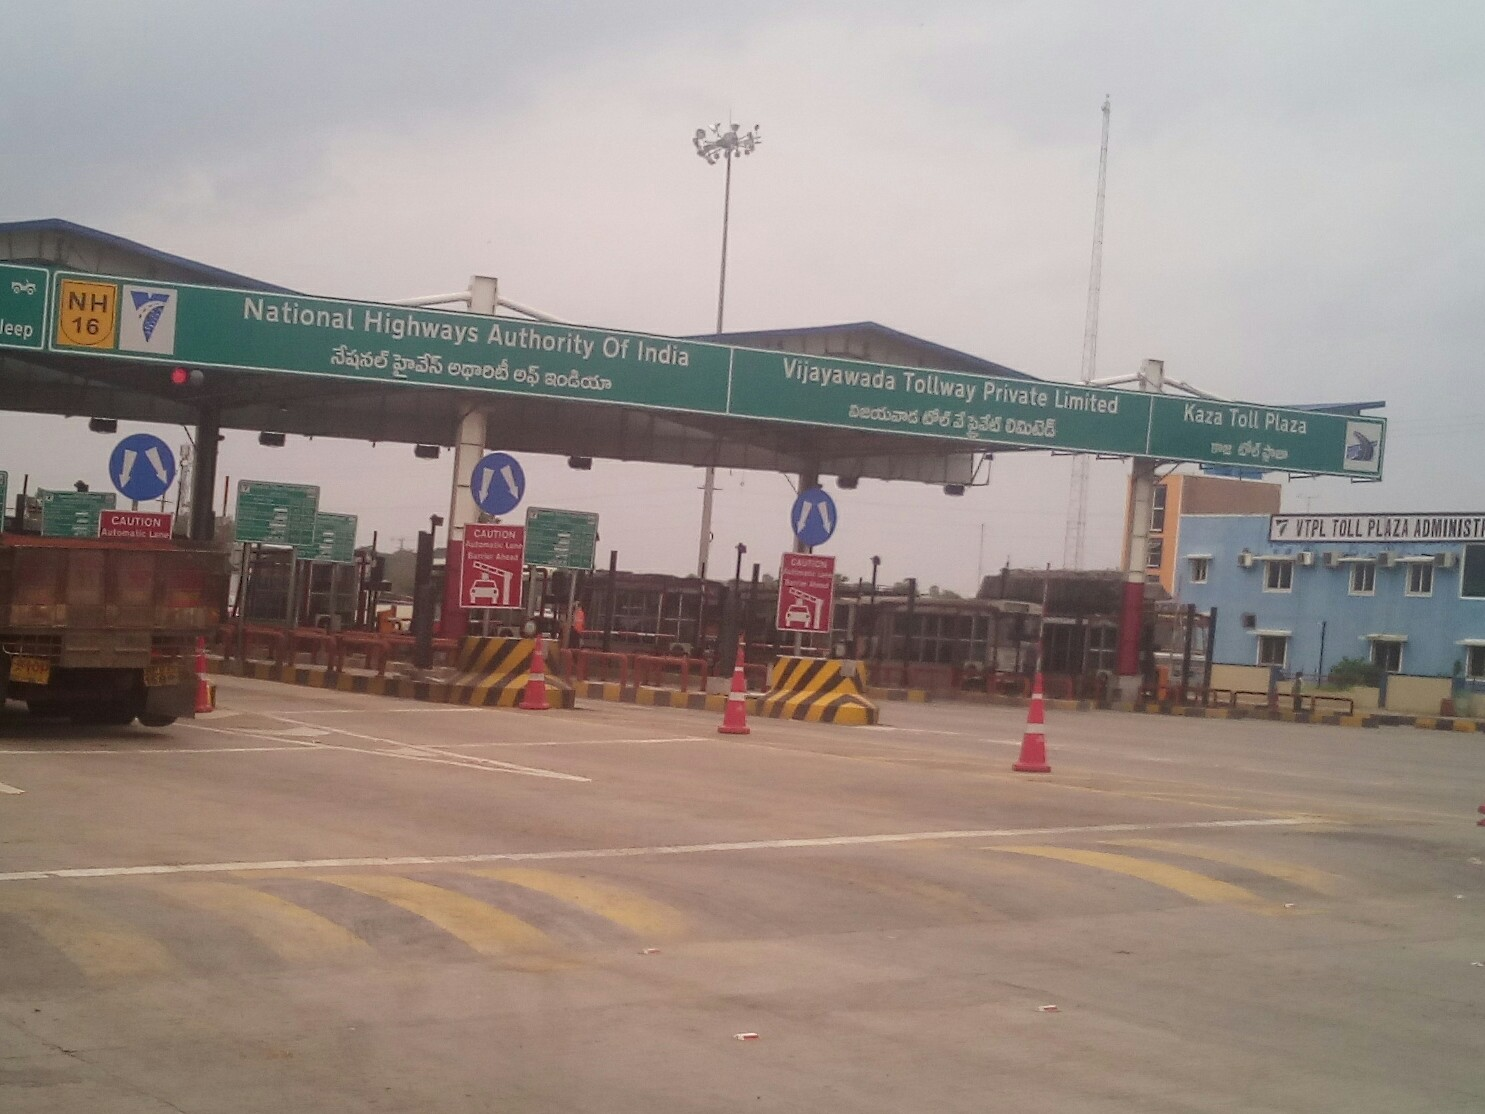 Kaza toll plaza